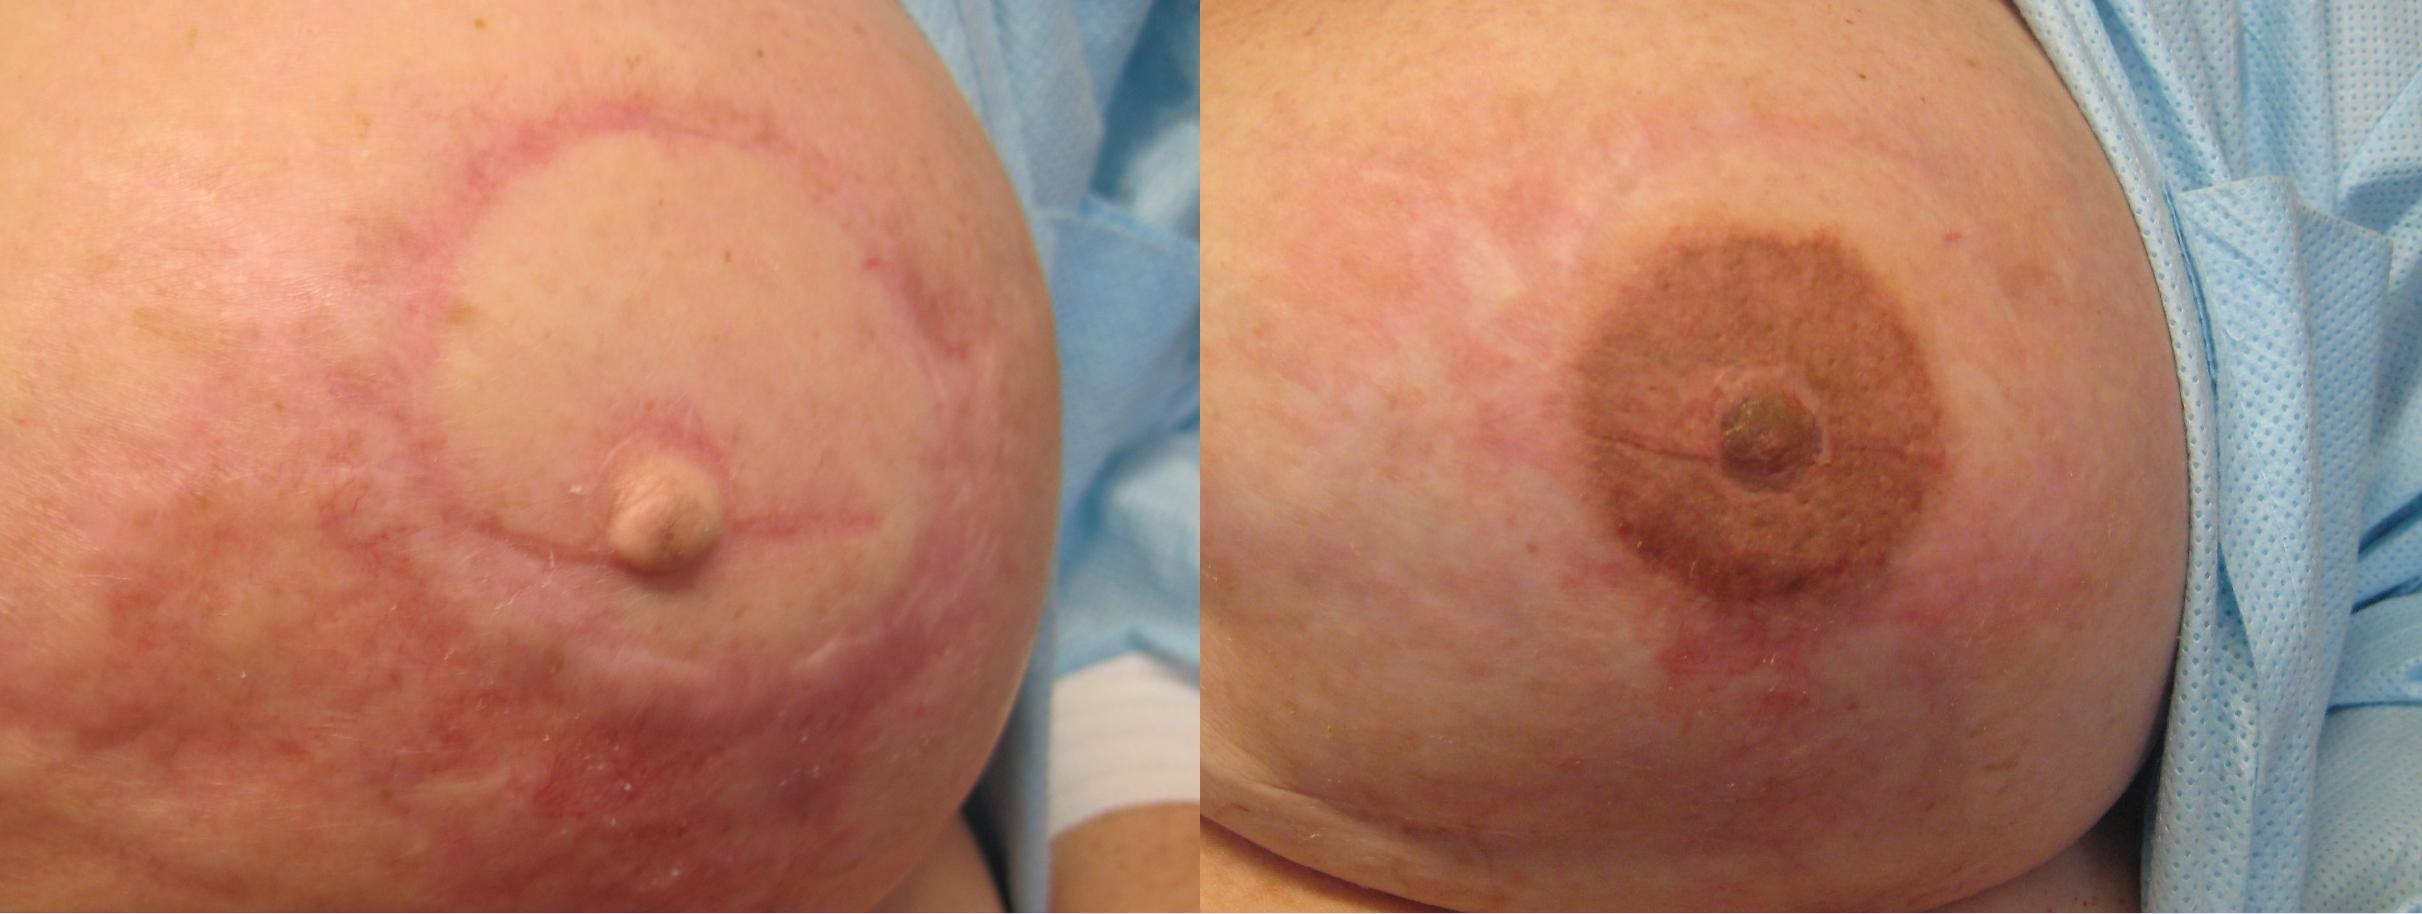 Heavy scarring after mastectomy & after repigmentation